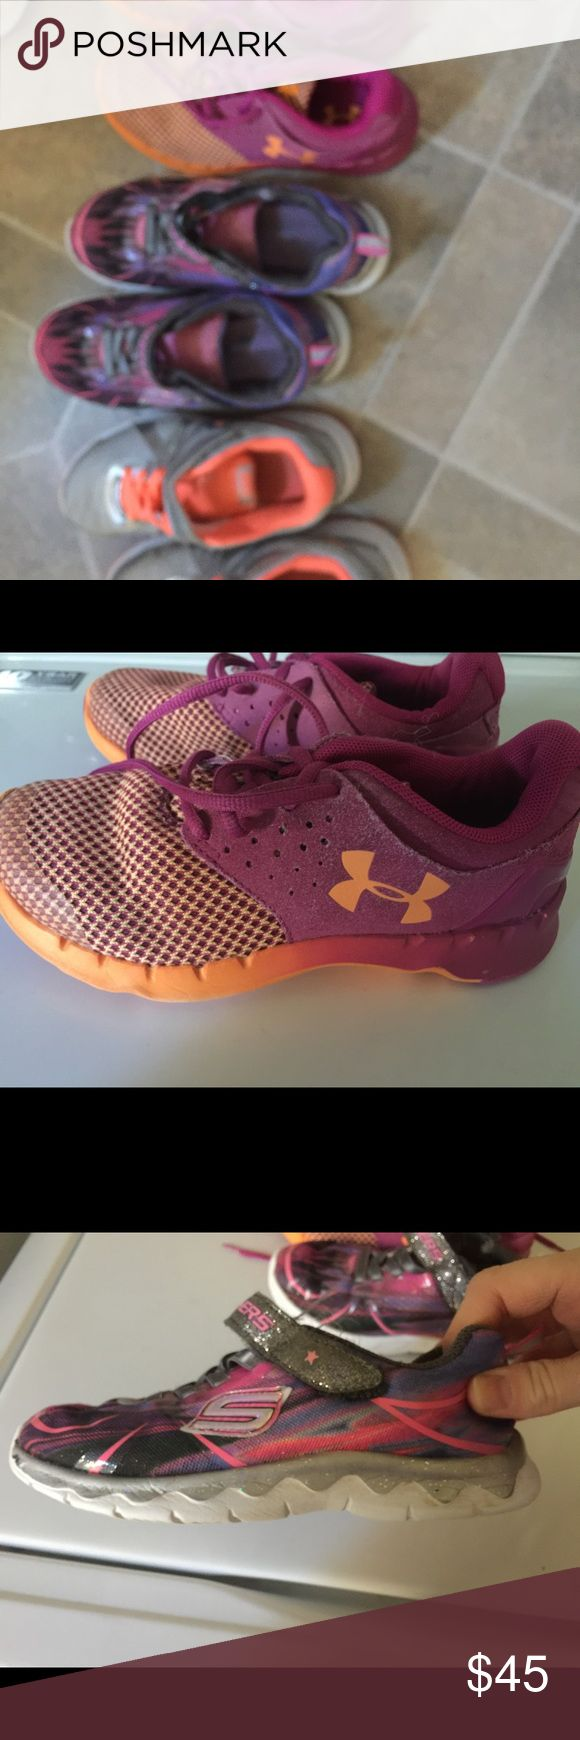 Lot is little girls tennis shoes Under Armour size 1, Sketchers size 13.5 and Nike size 12.5. All good condition. Sketchers are memory foam. Under Armour Shoes Sneakers